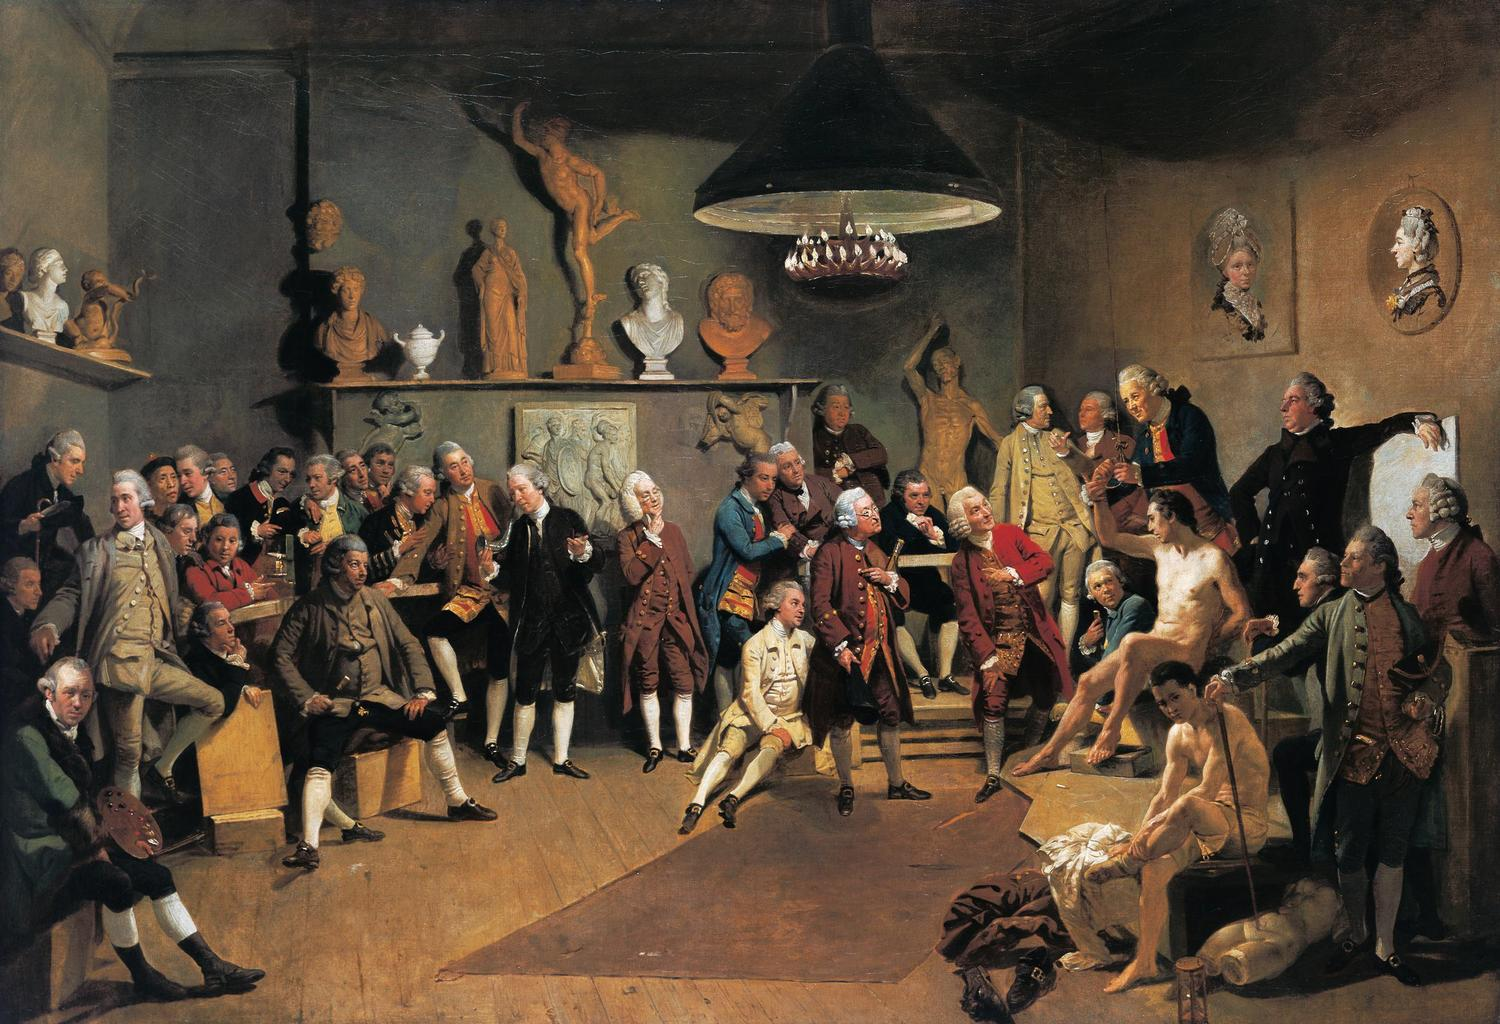 Johann Zoffany, The Academicians of the Royal Academy, 1771-2, oil on canvas, from the Royal Collection, London